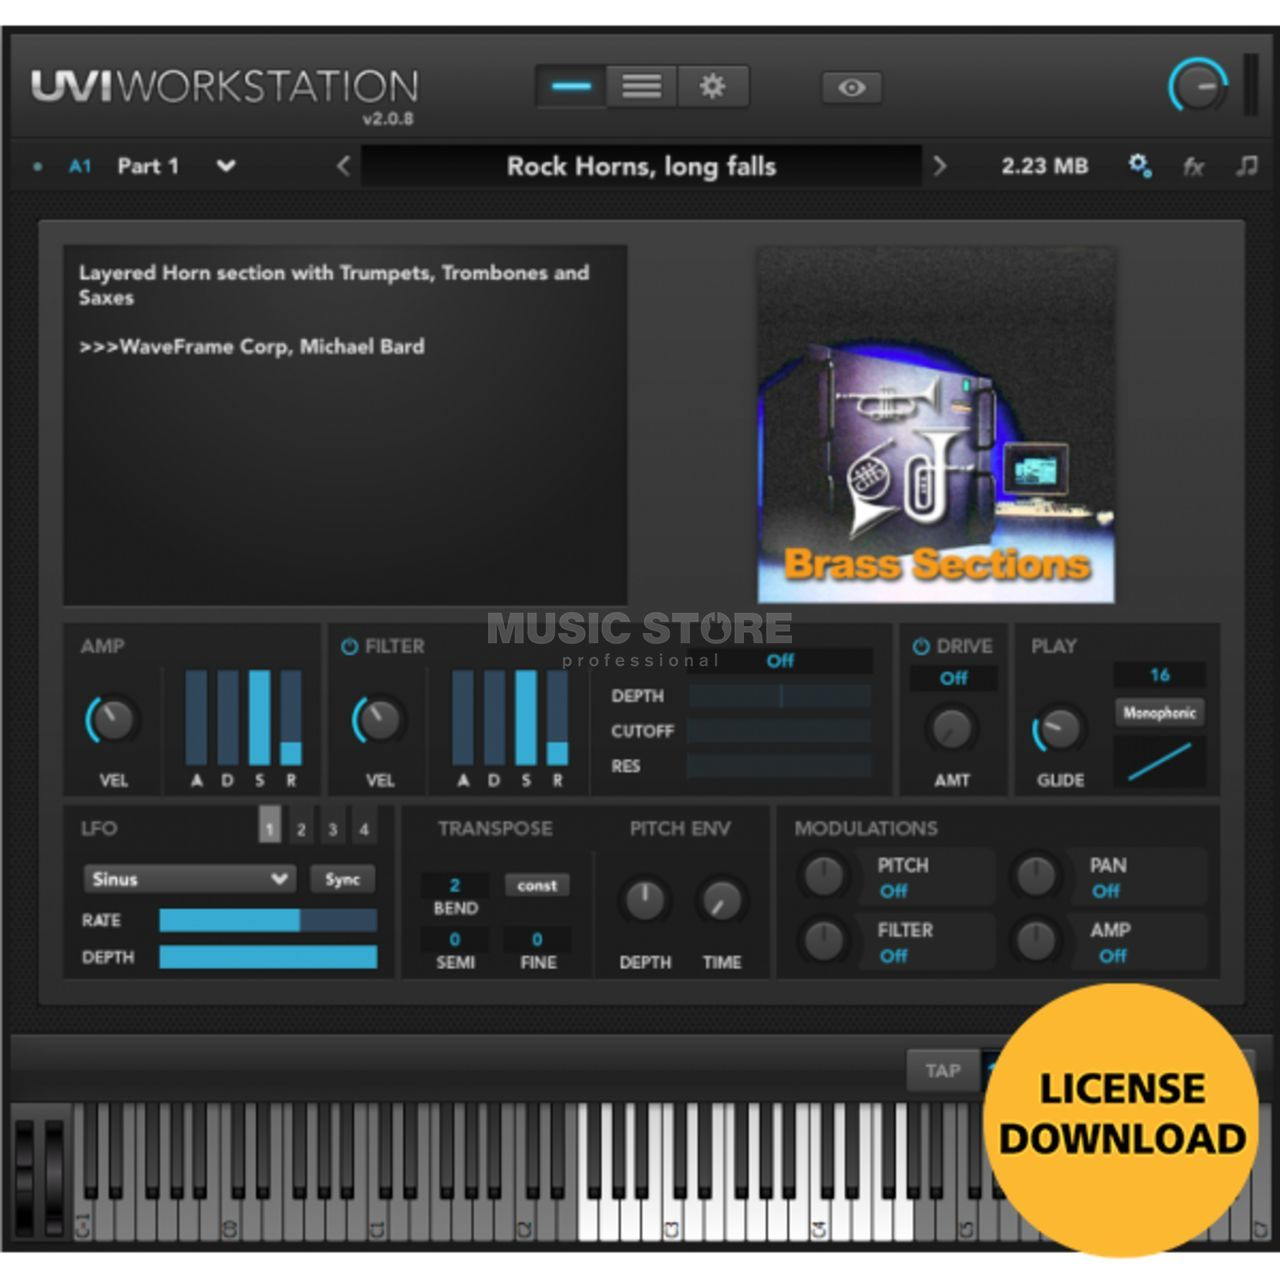 UVI WaveFrame Sound Coll  CODE Software Instrument /Download | MUSIC STORE  professional